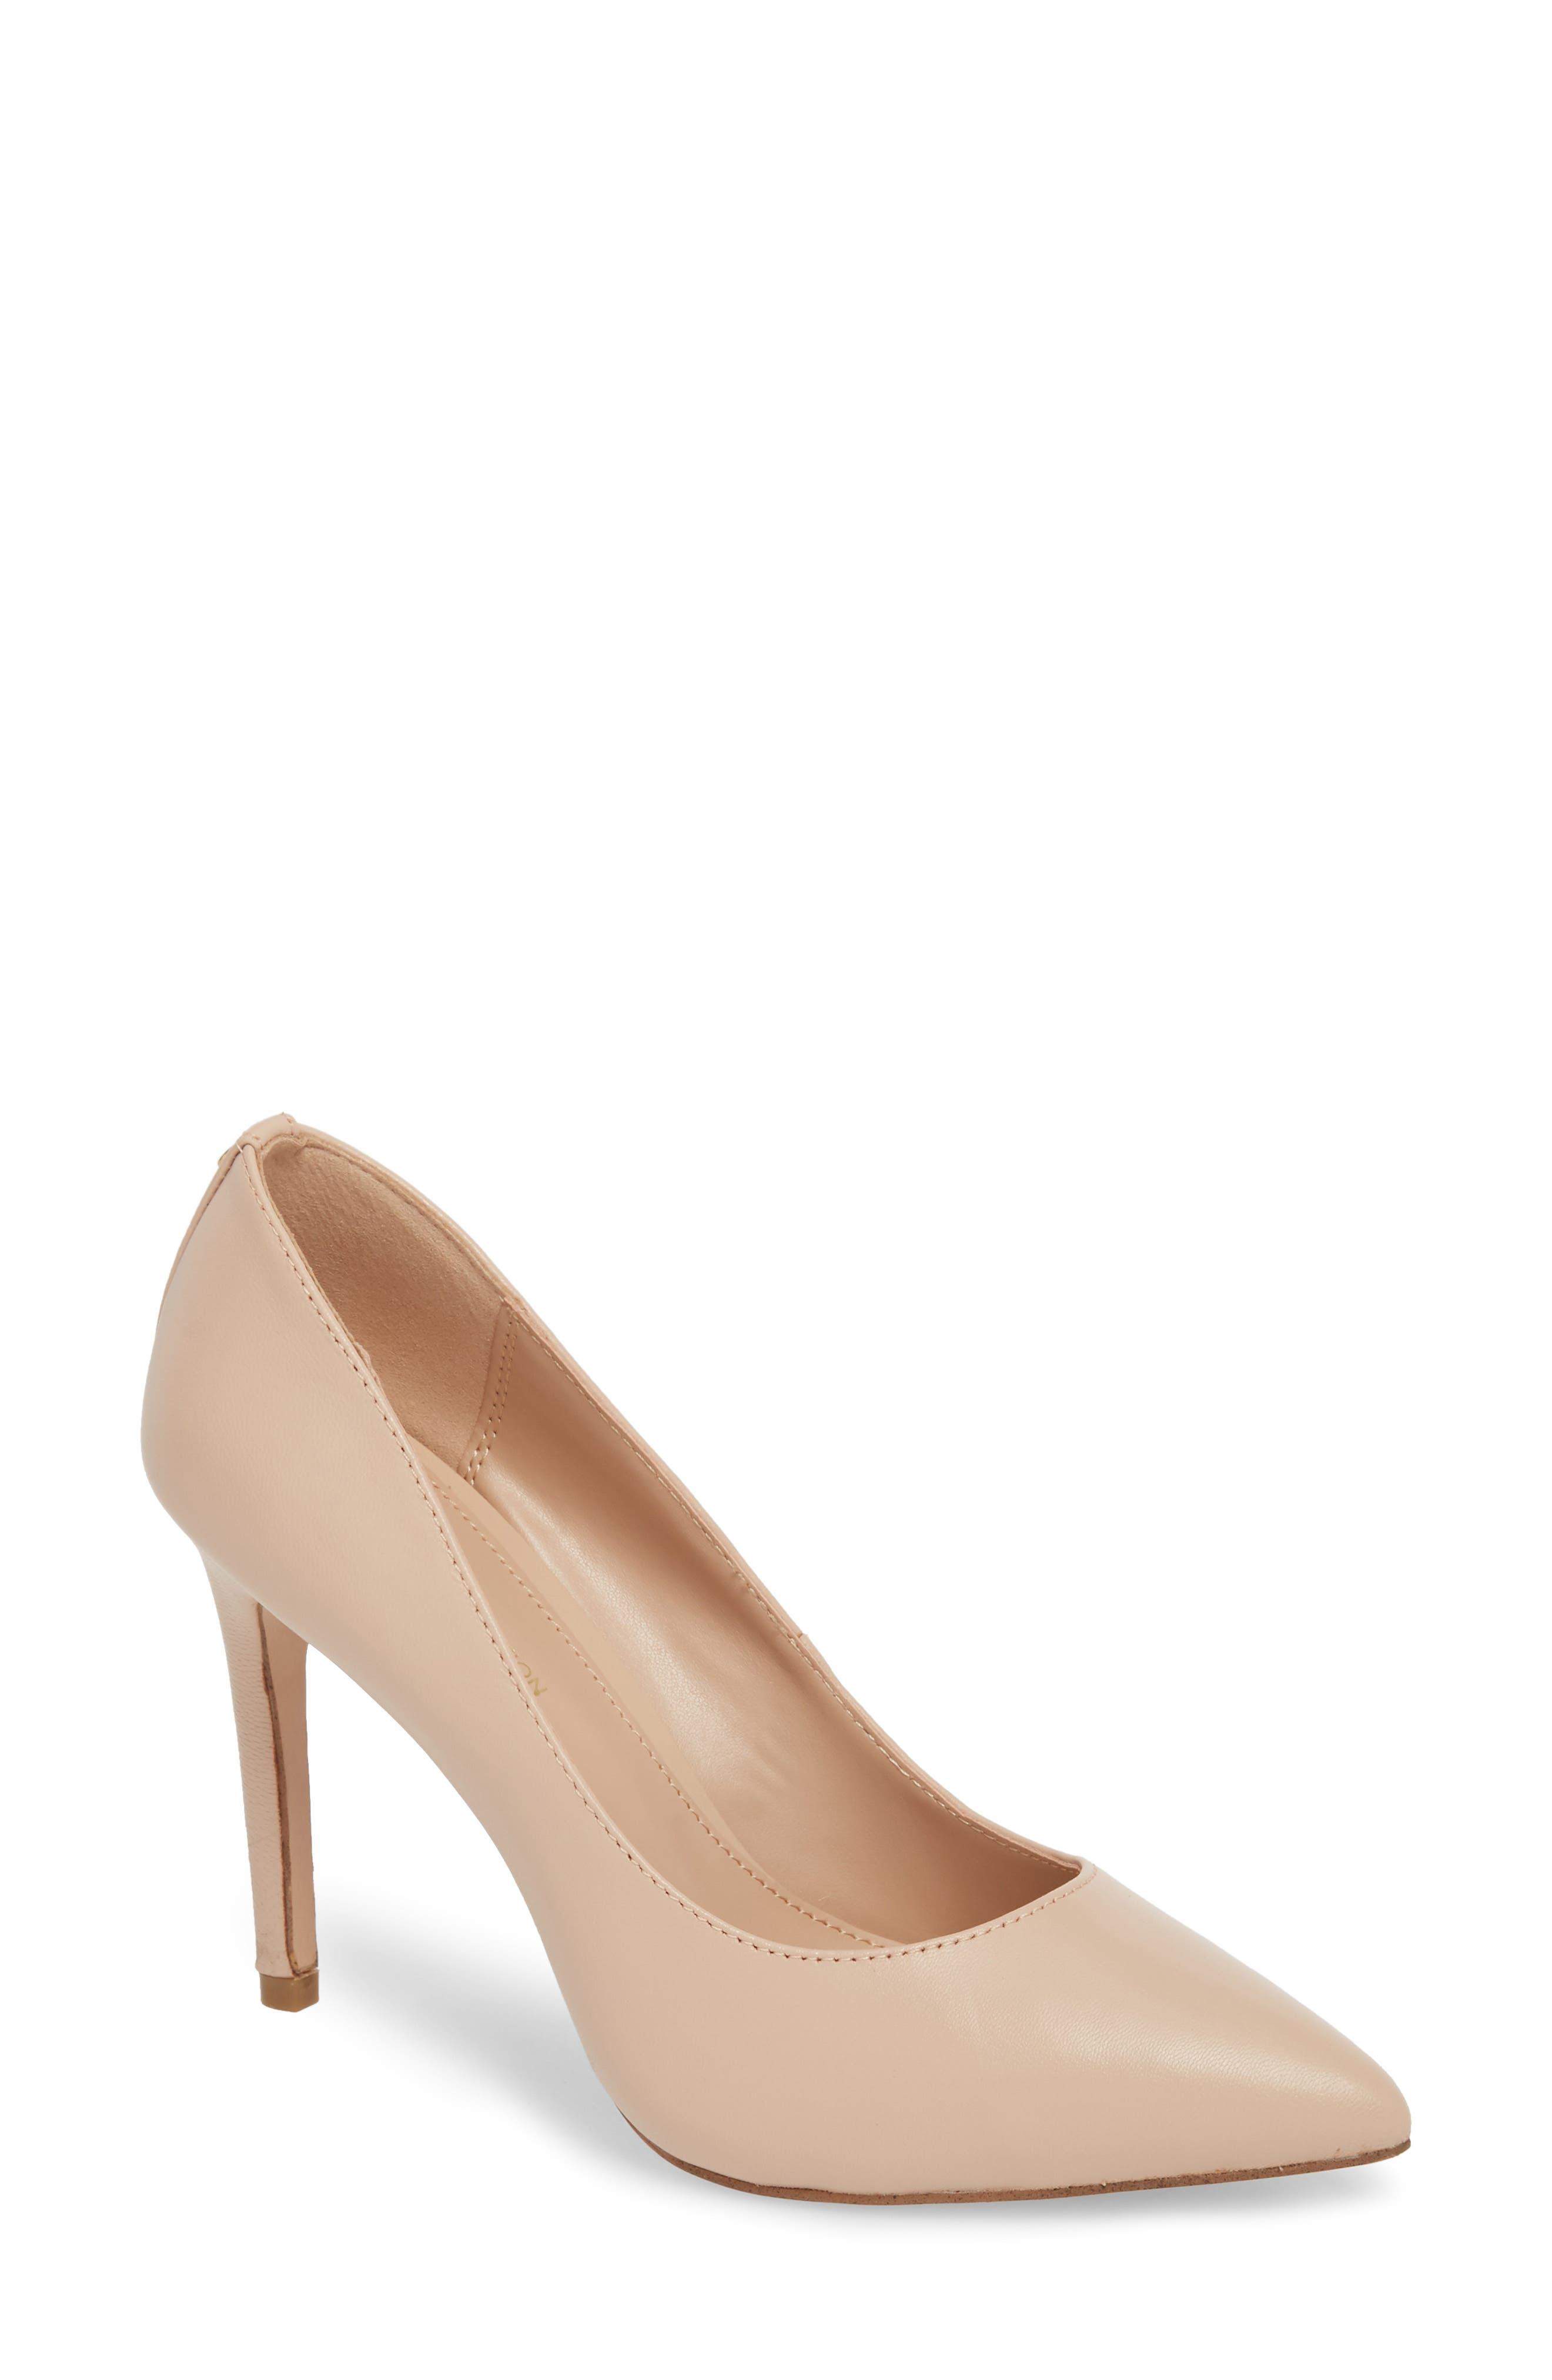 BCBG,                             Heidi Pump,                             Main thumbnail 1, color,                             SHELL LEATHER